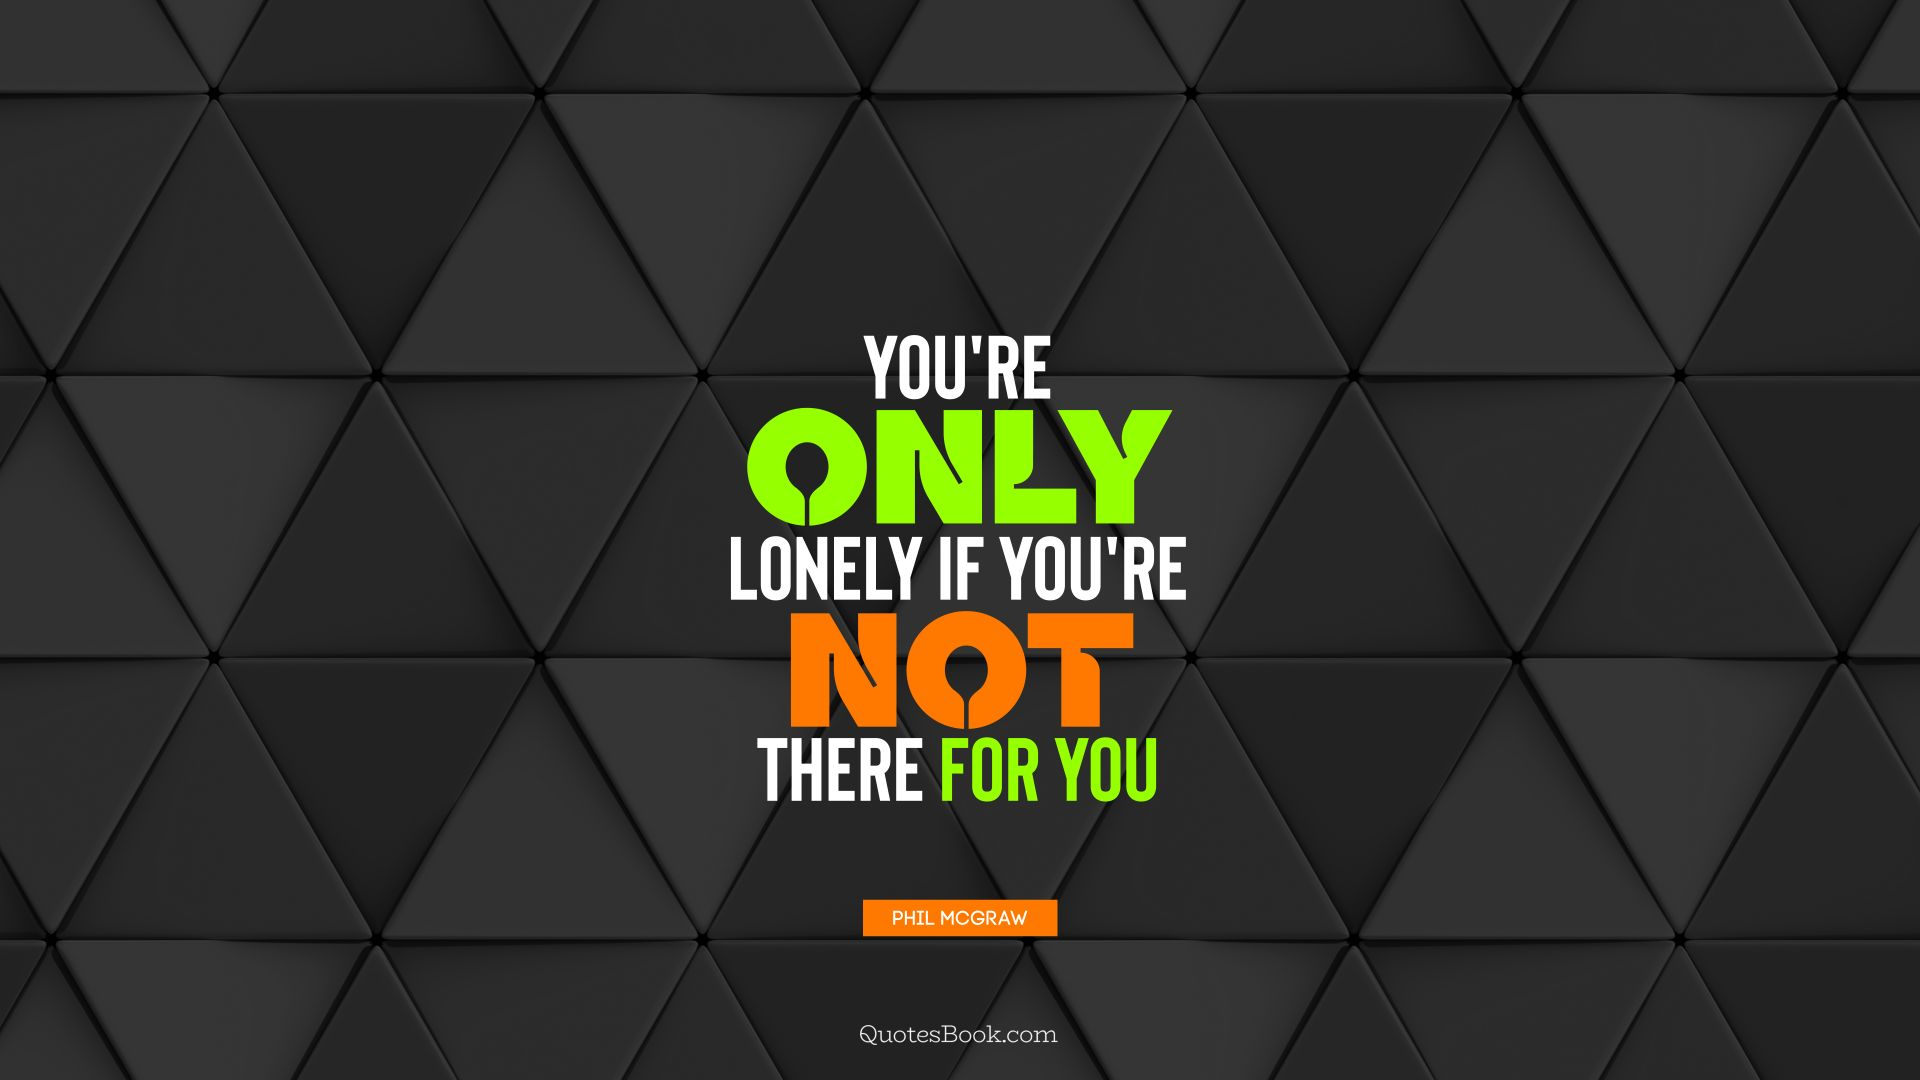 You're only lonely if you're not there for you. - Quote by Phil McGraw